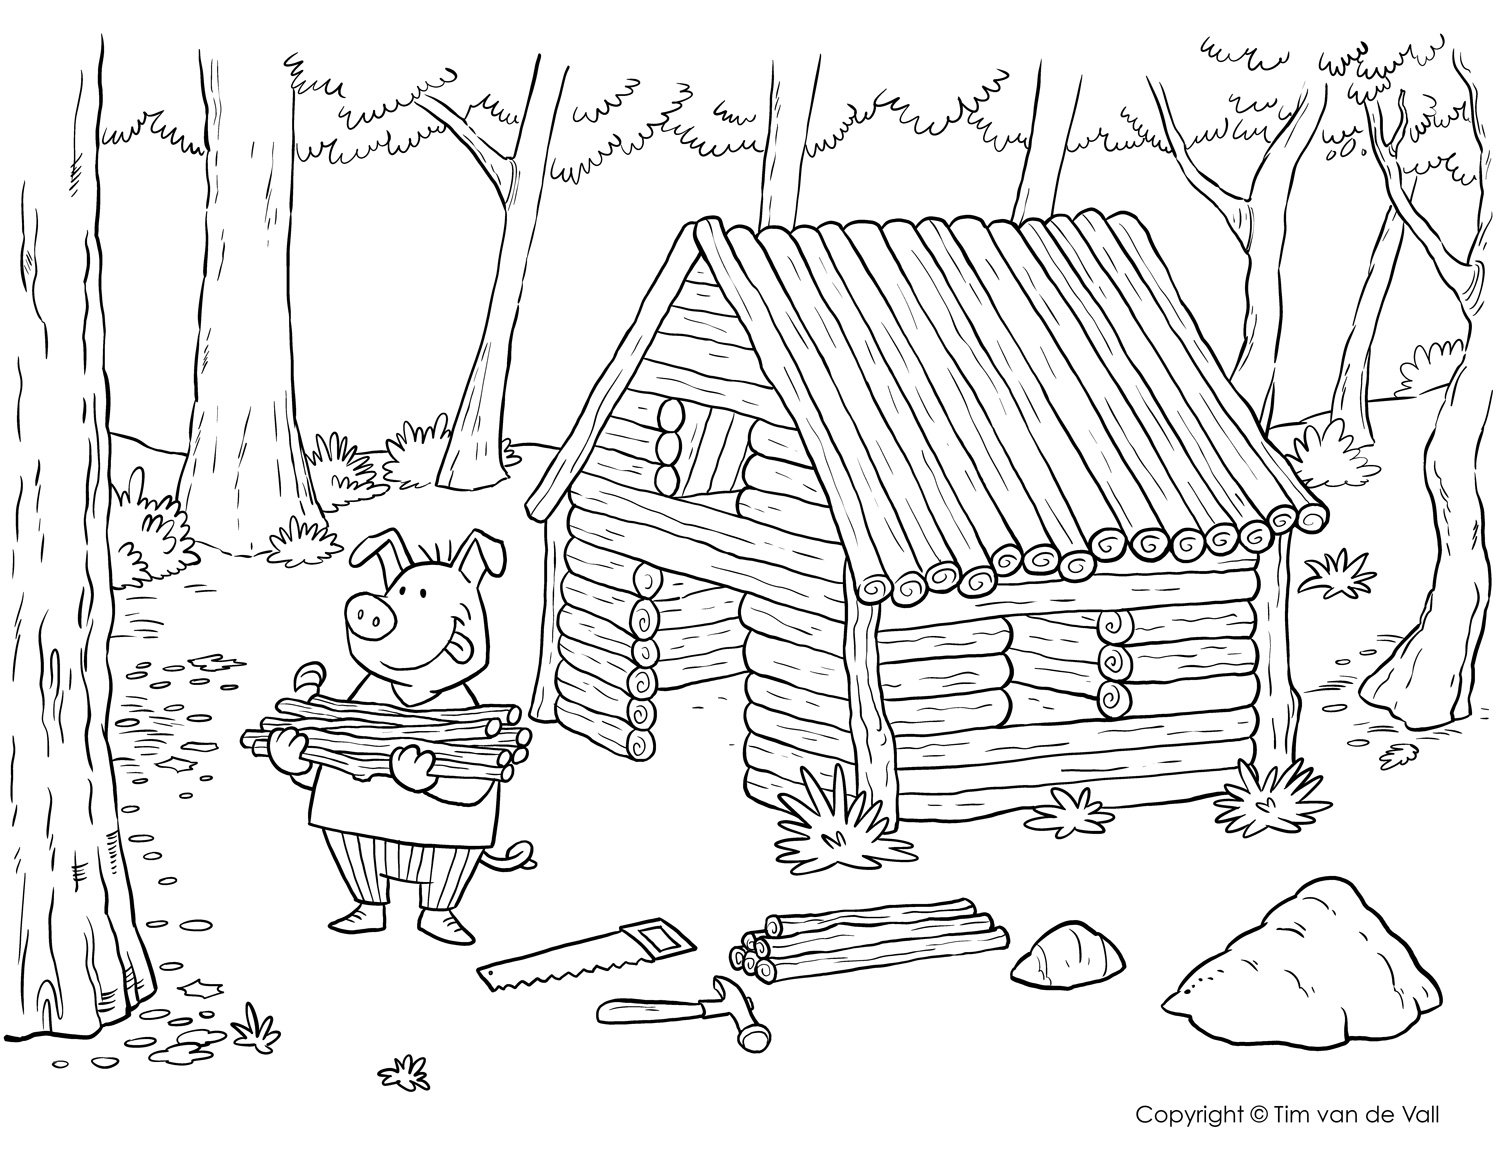 Three Little Pigs Coloring Pages – The Three Little Pigs Story